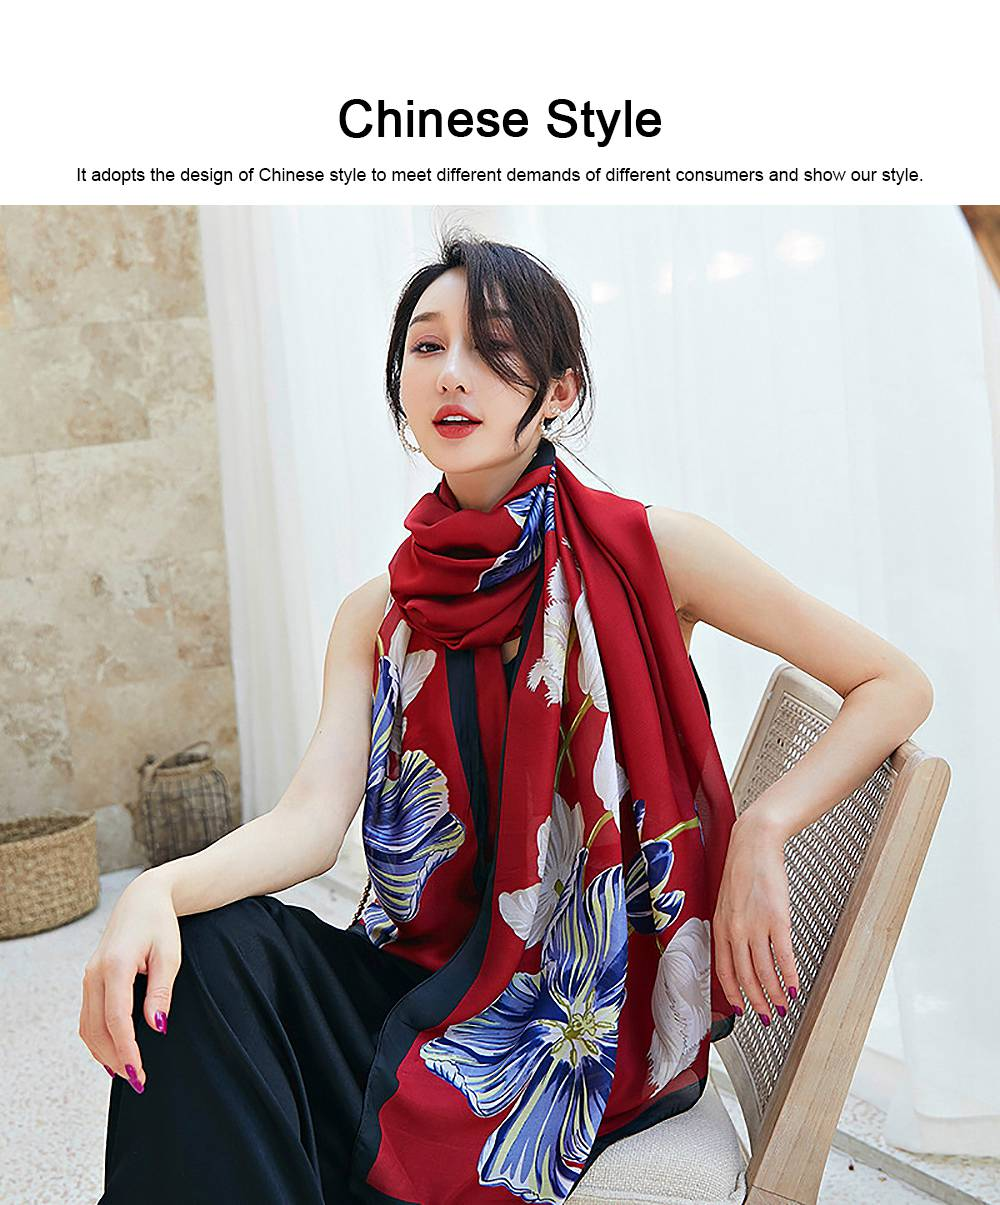 Imitation Silk Scarf for Women Chinese Style Square Shape Suitable for Many Occasions Shawl, Wide Range Scarves 3